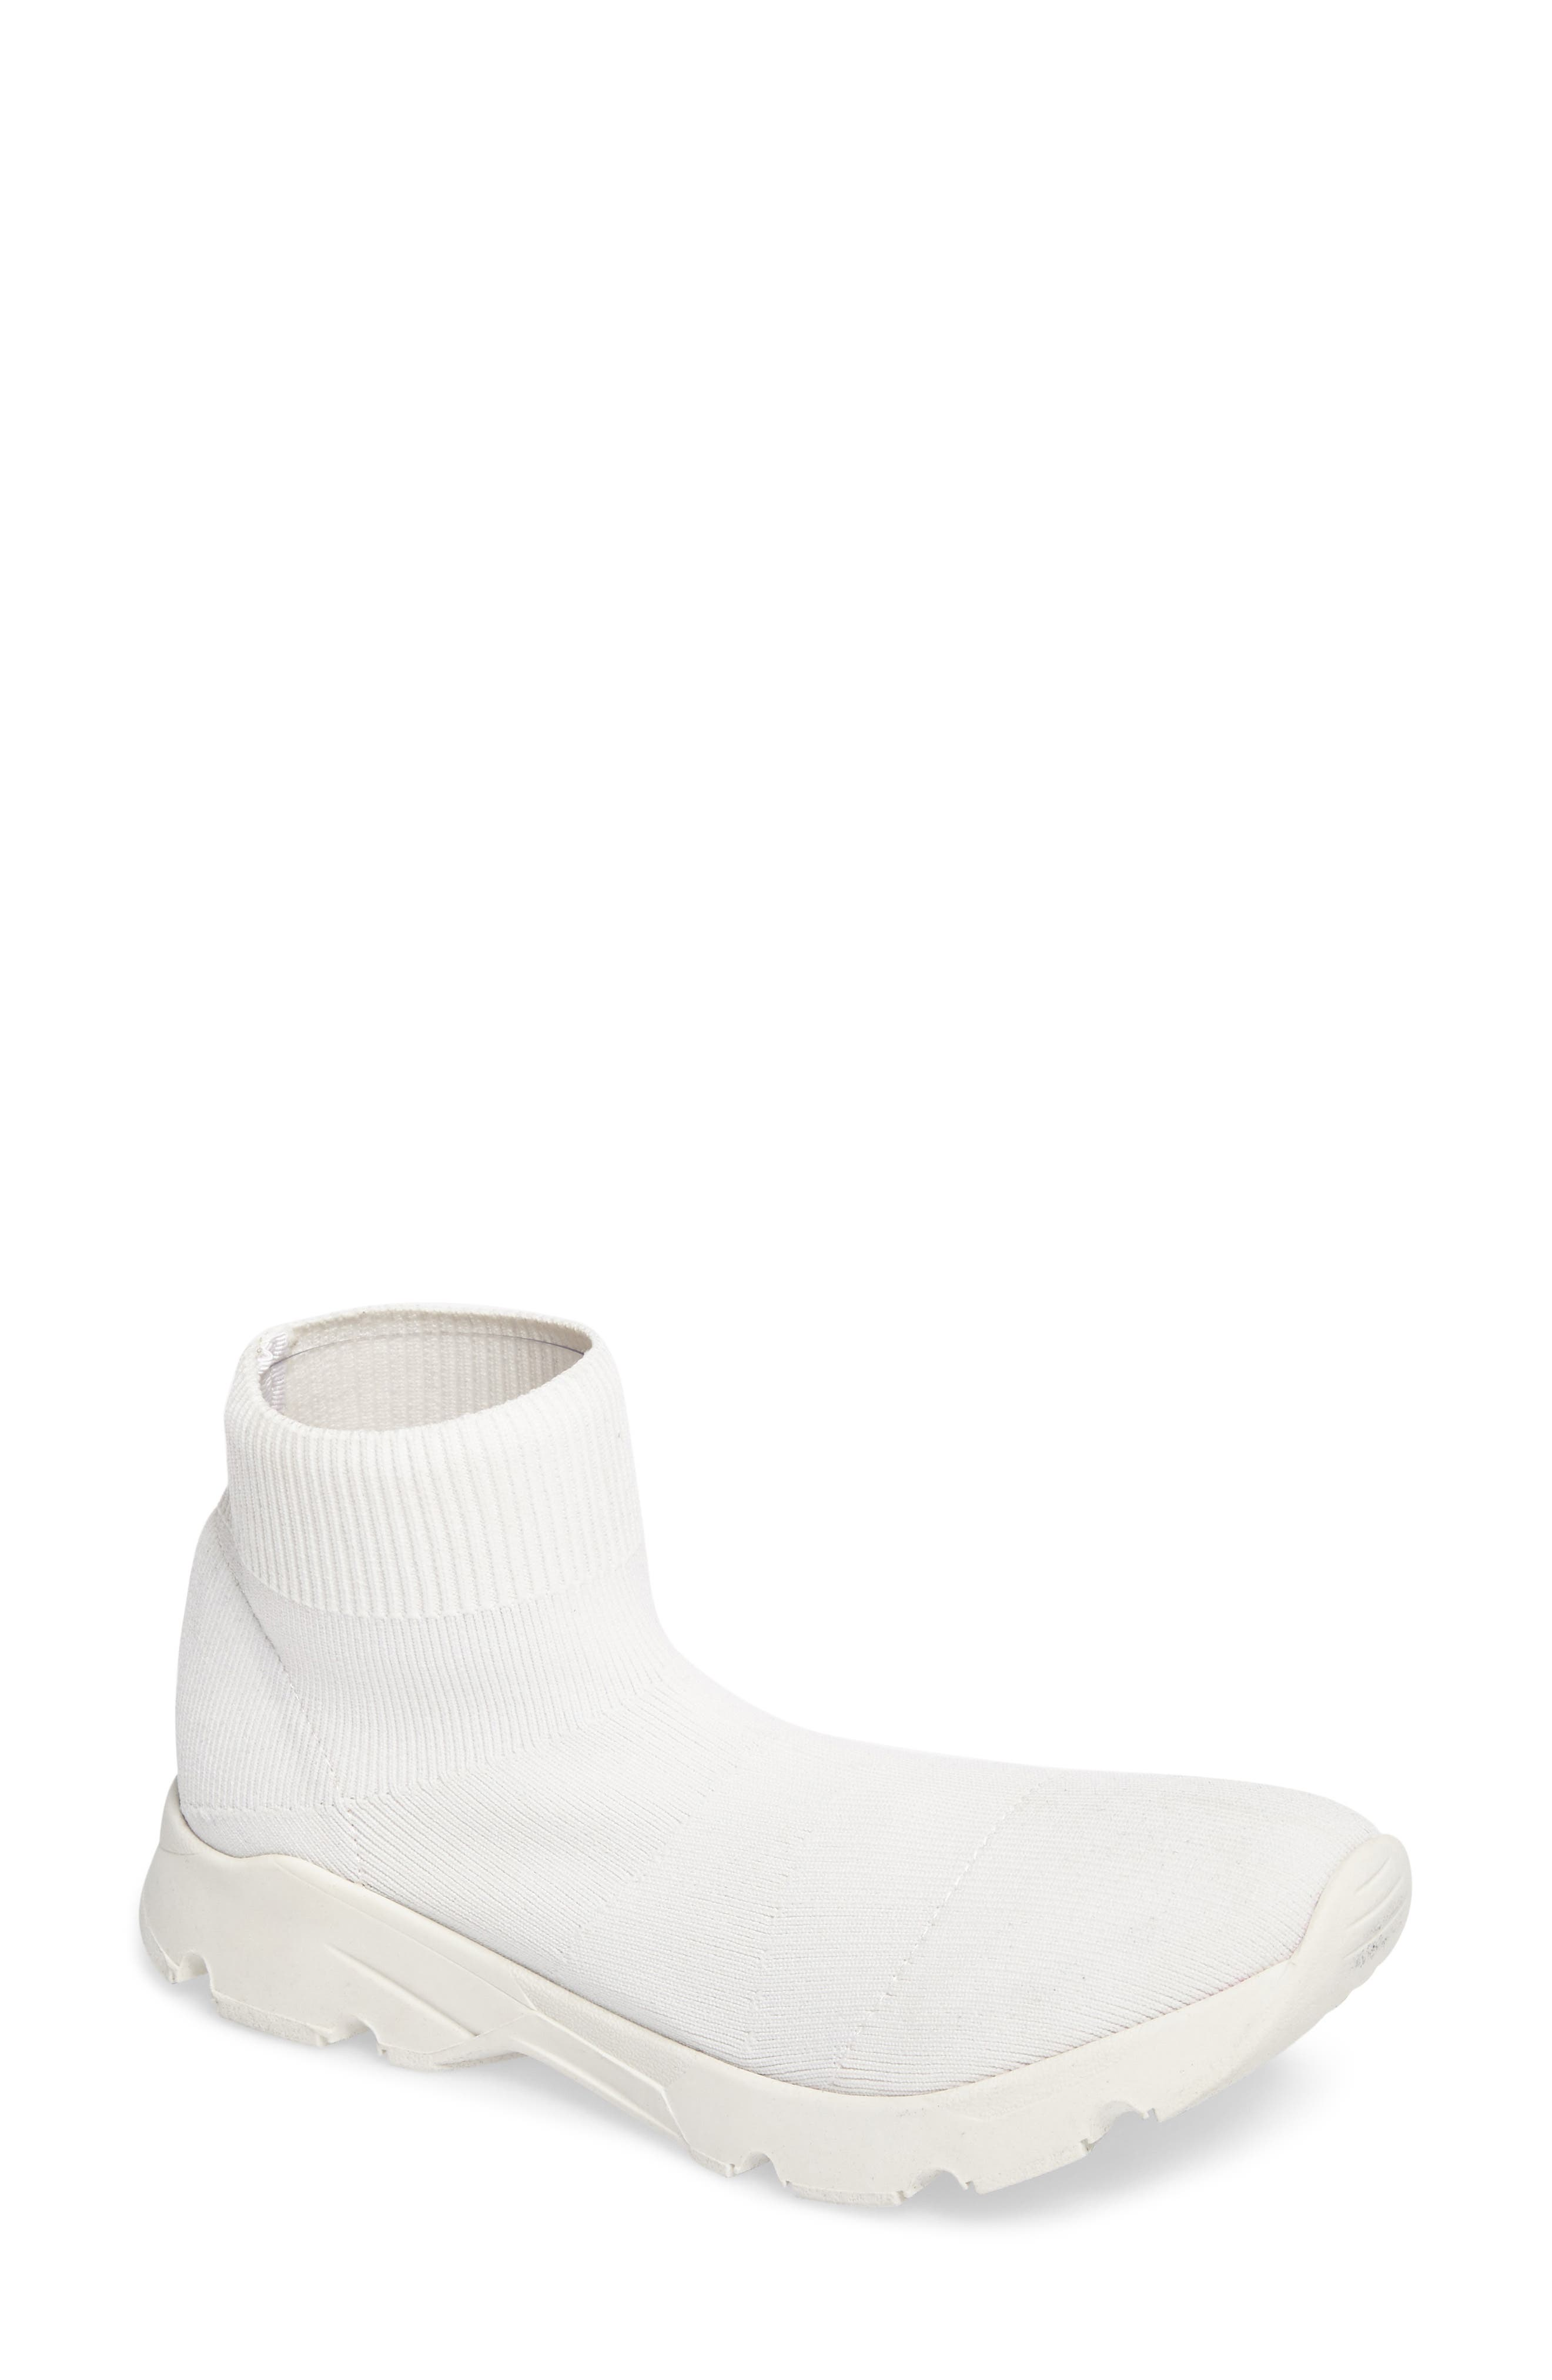 Alternate Image 1 Selected - Tony Bianco Winston Knit High Top Sneaker (Women)